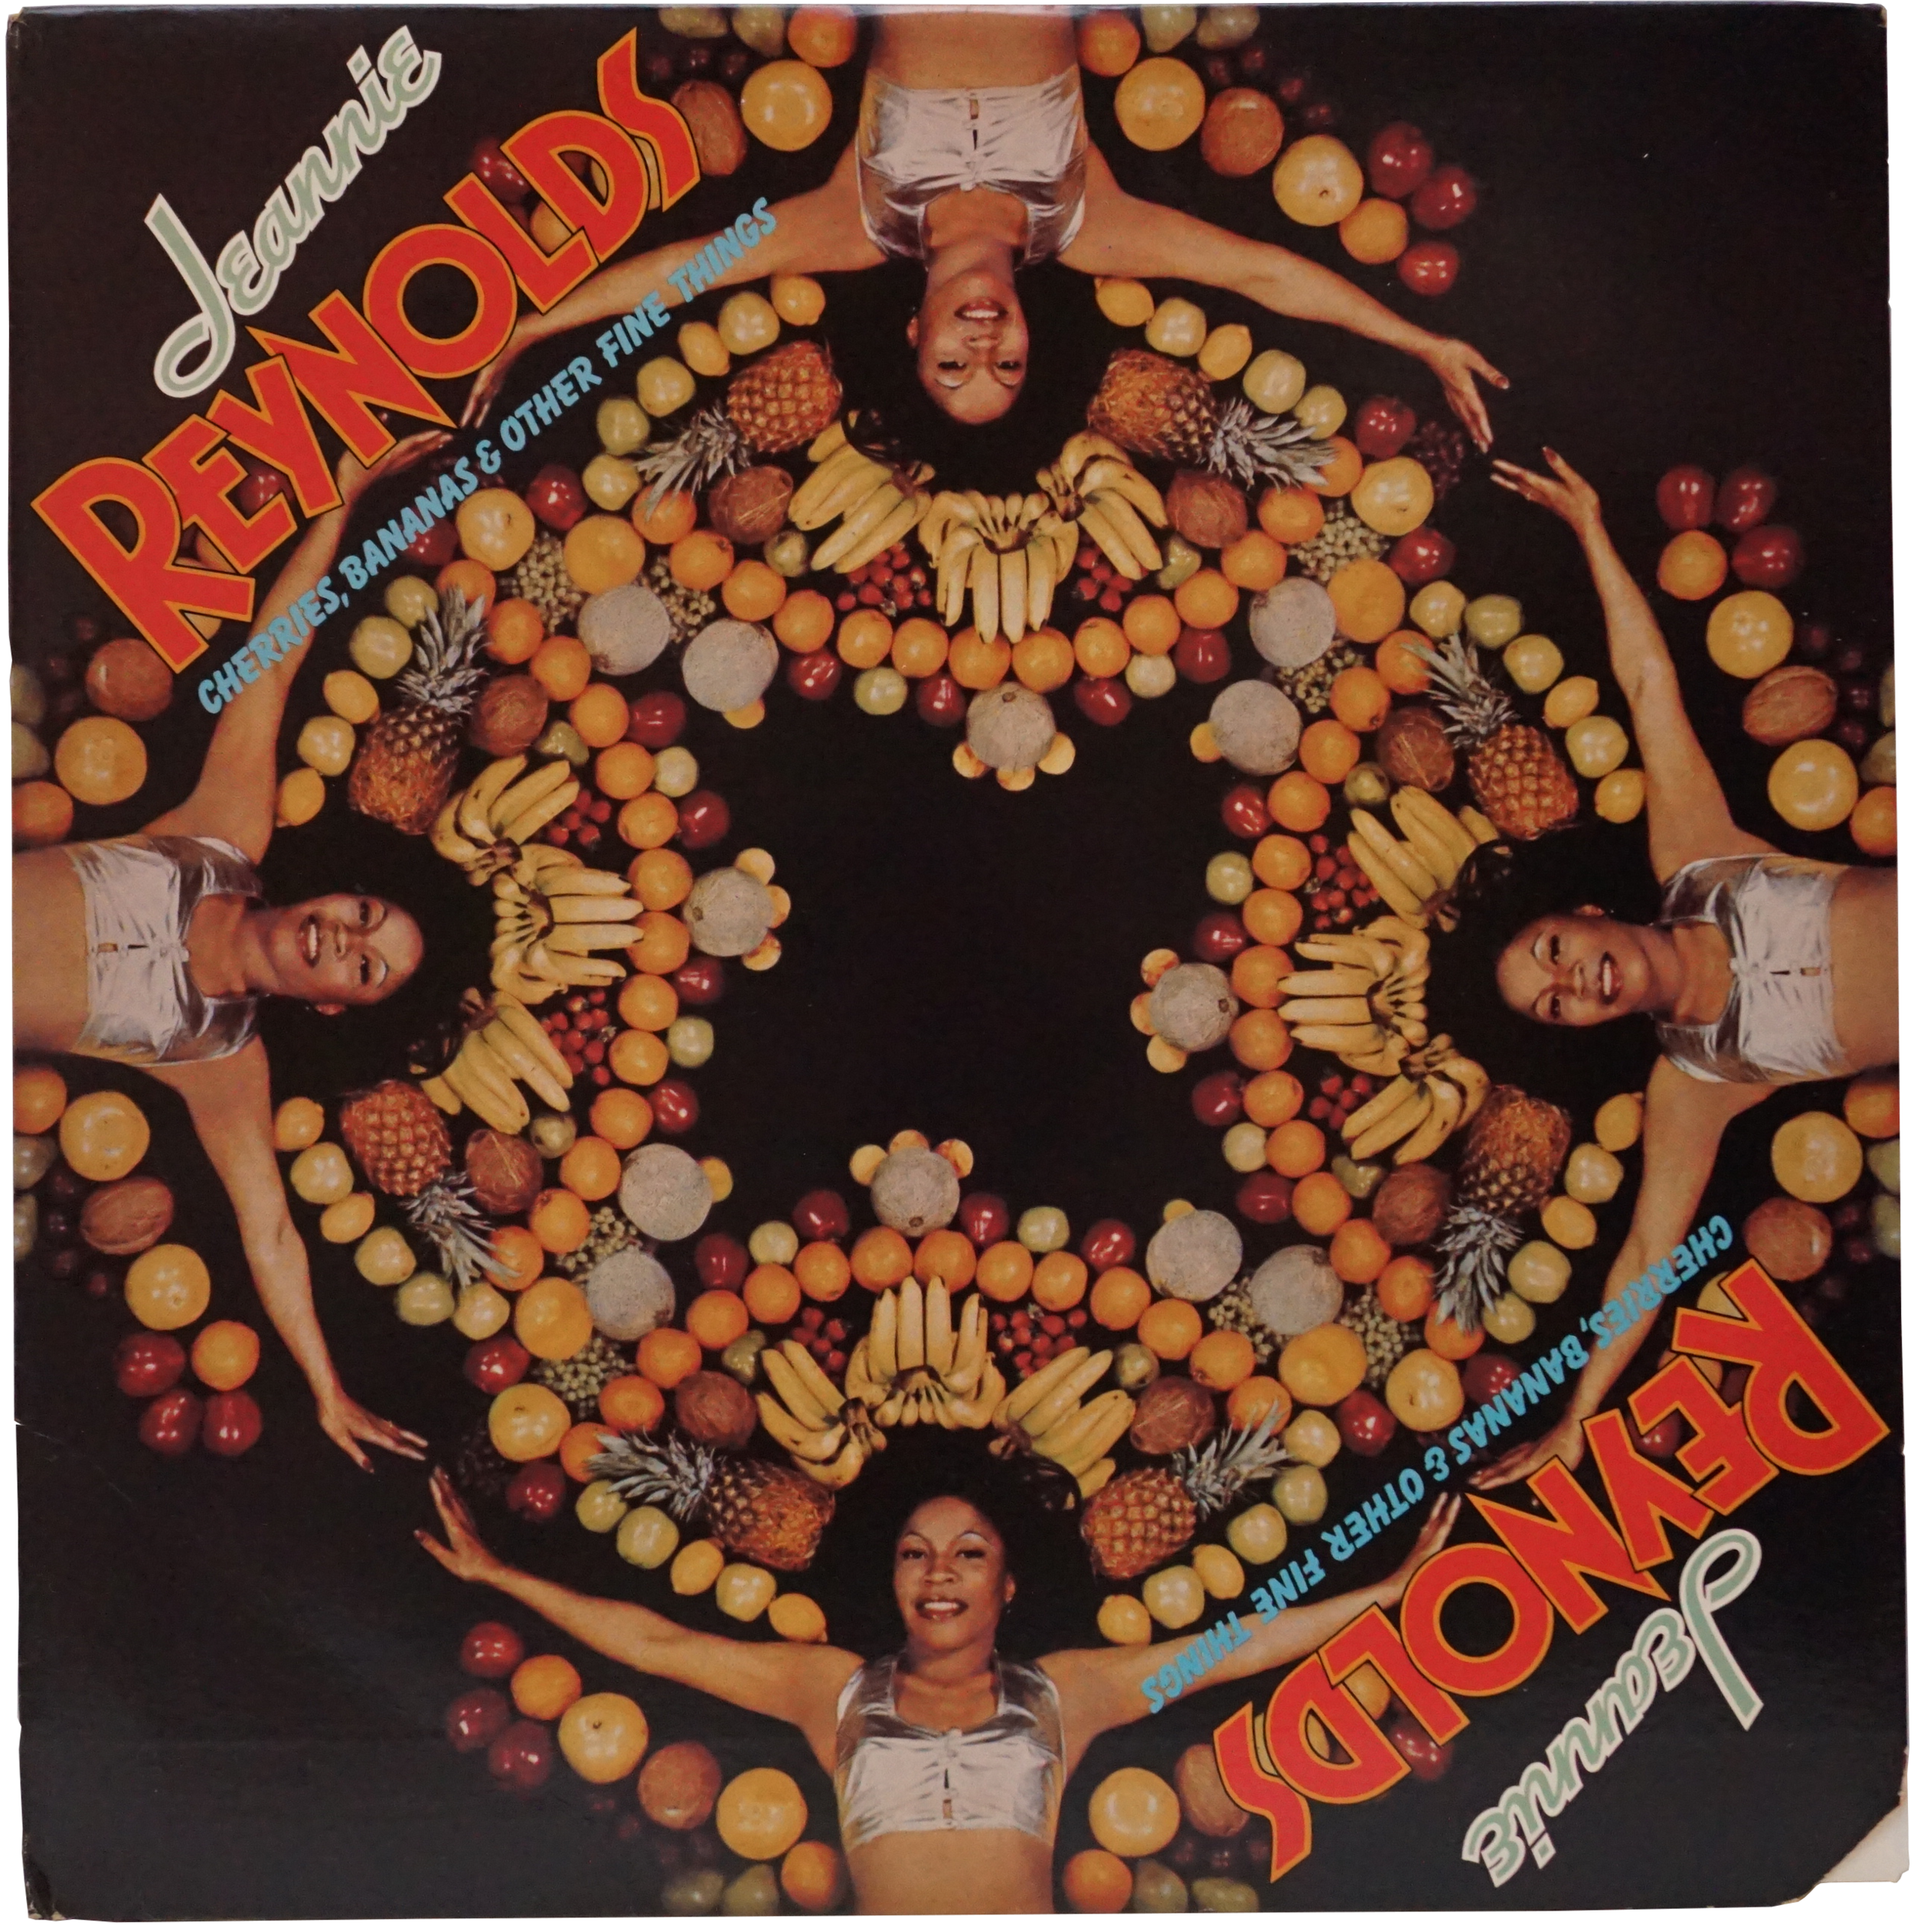 WLWLTDOO-1976-LP-JEANNIE_REYNOLDS-CHERRIES_BANANAS_AND_OTHER_FINE_THINGS-FRONT-NBLP7029.png